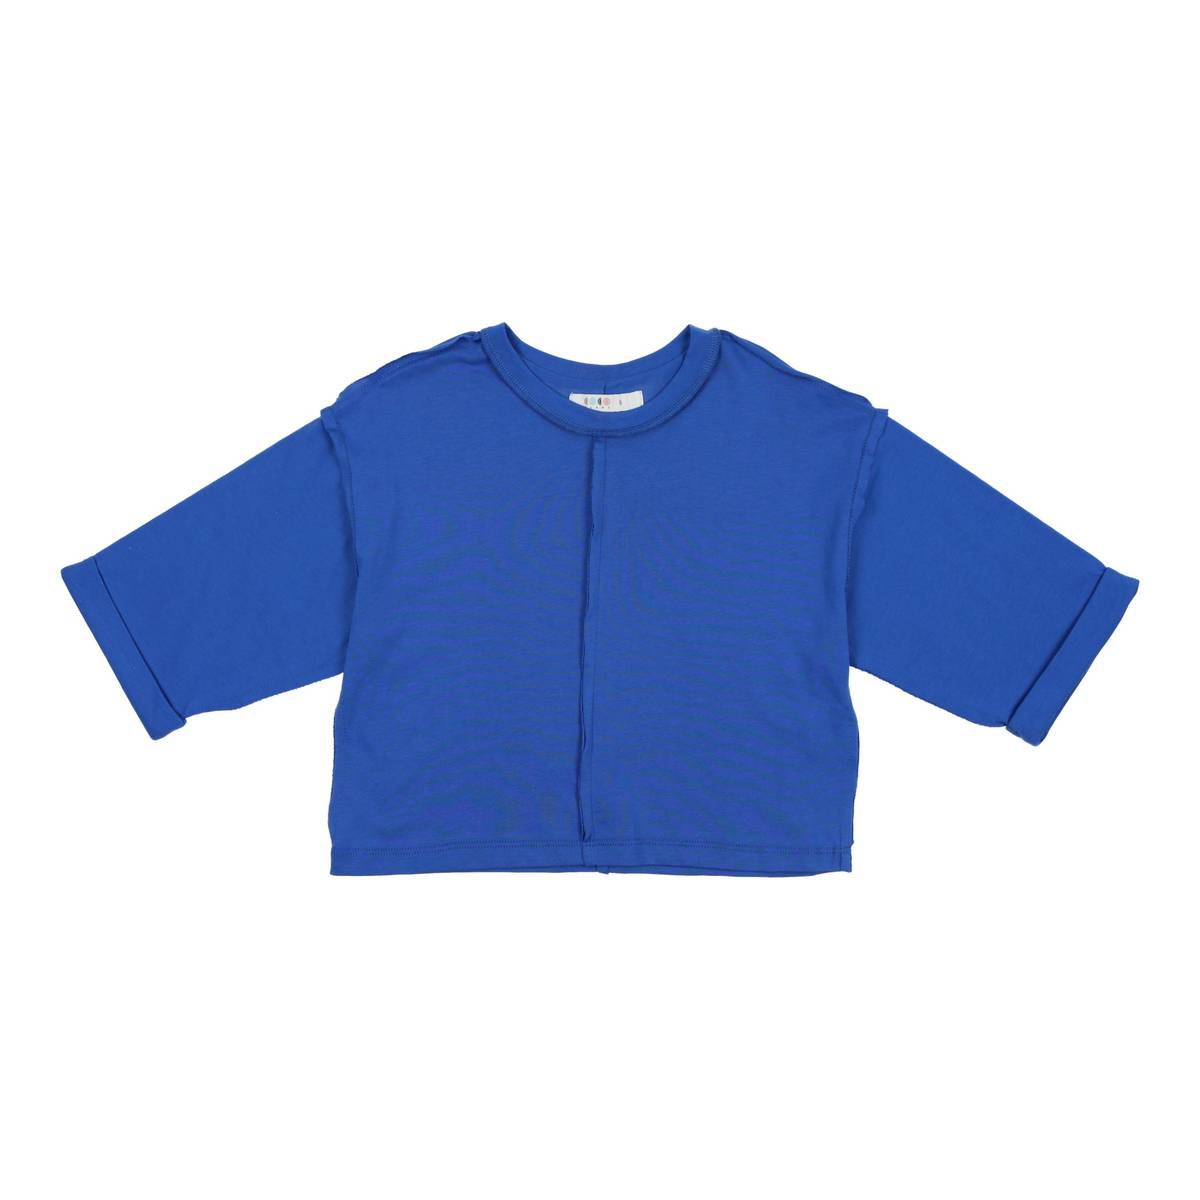 Coco Blanc Cobalt Blue 34 Cotton T-Shirt